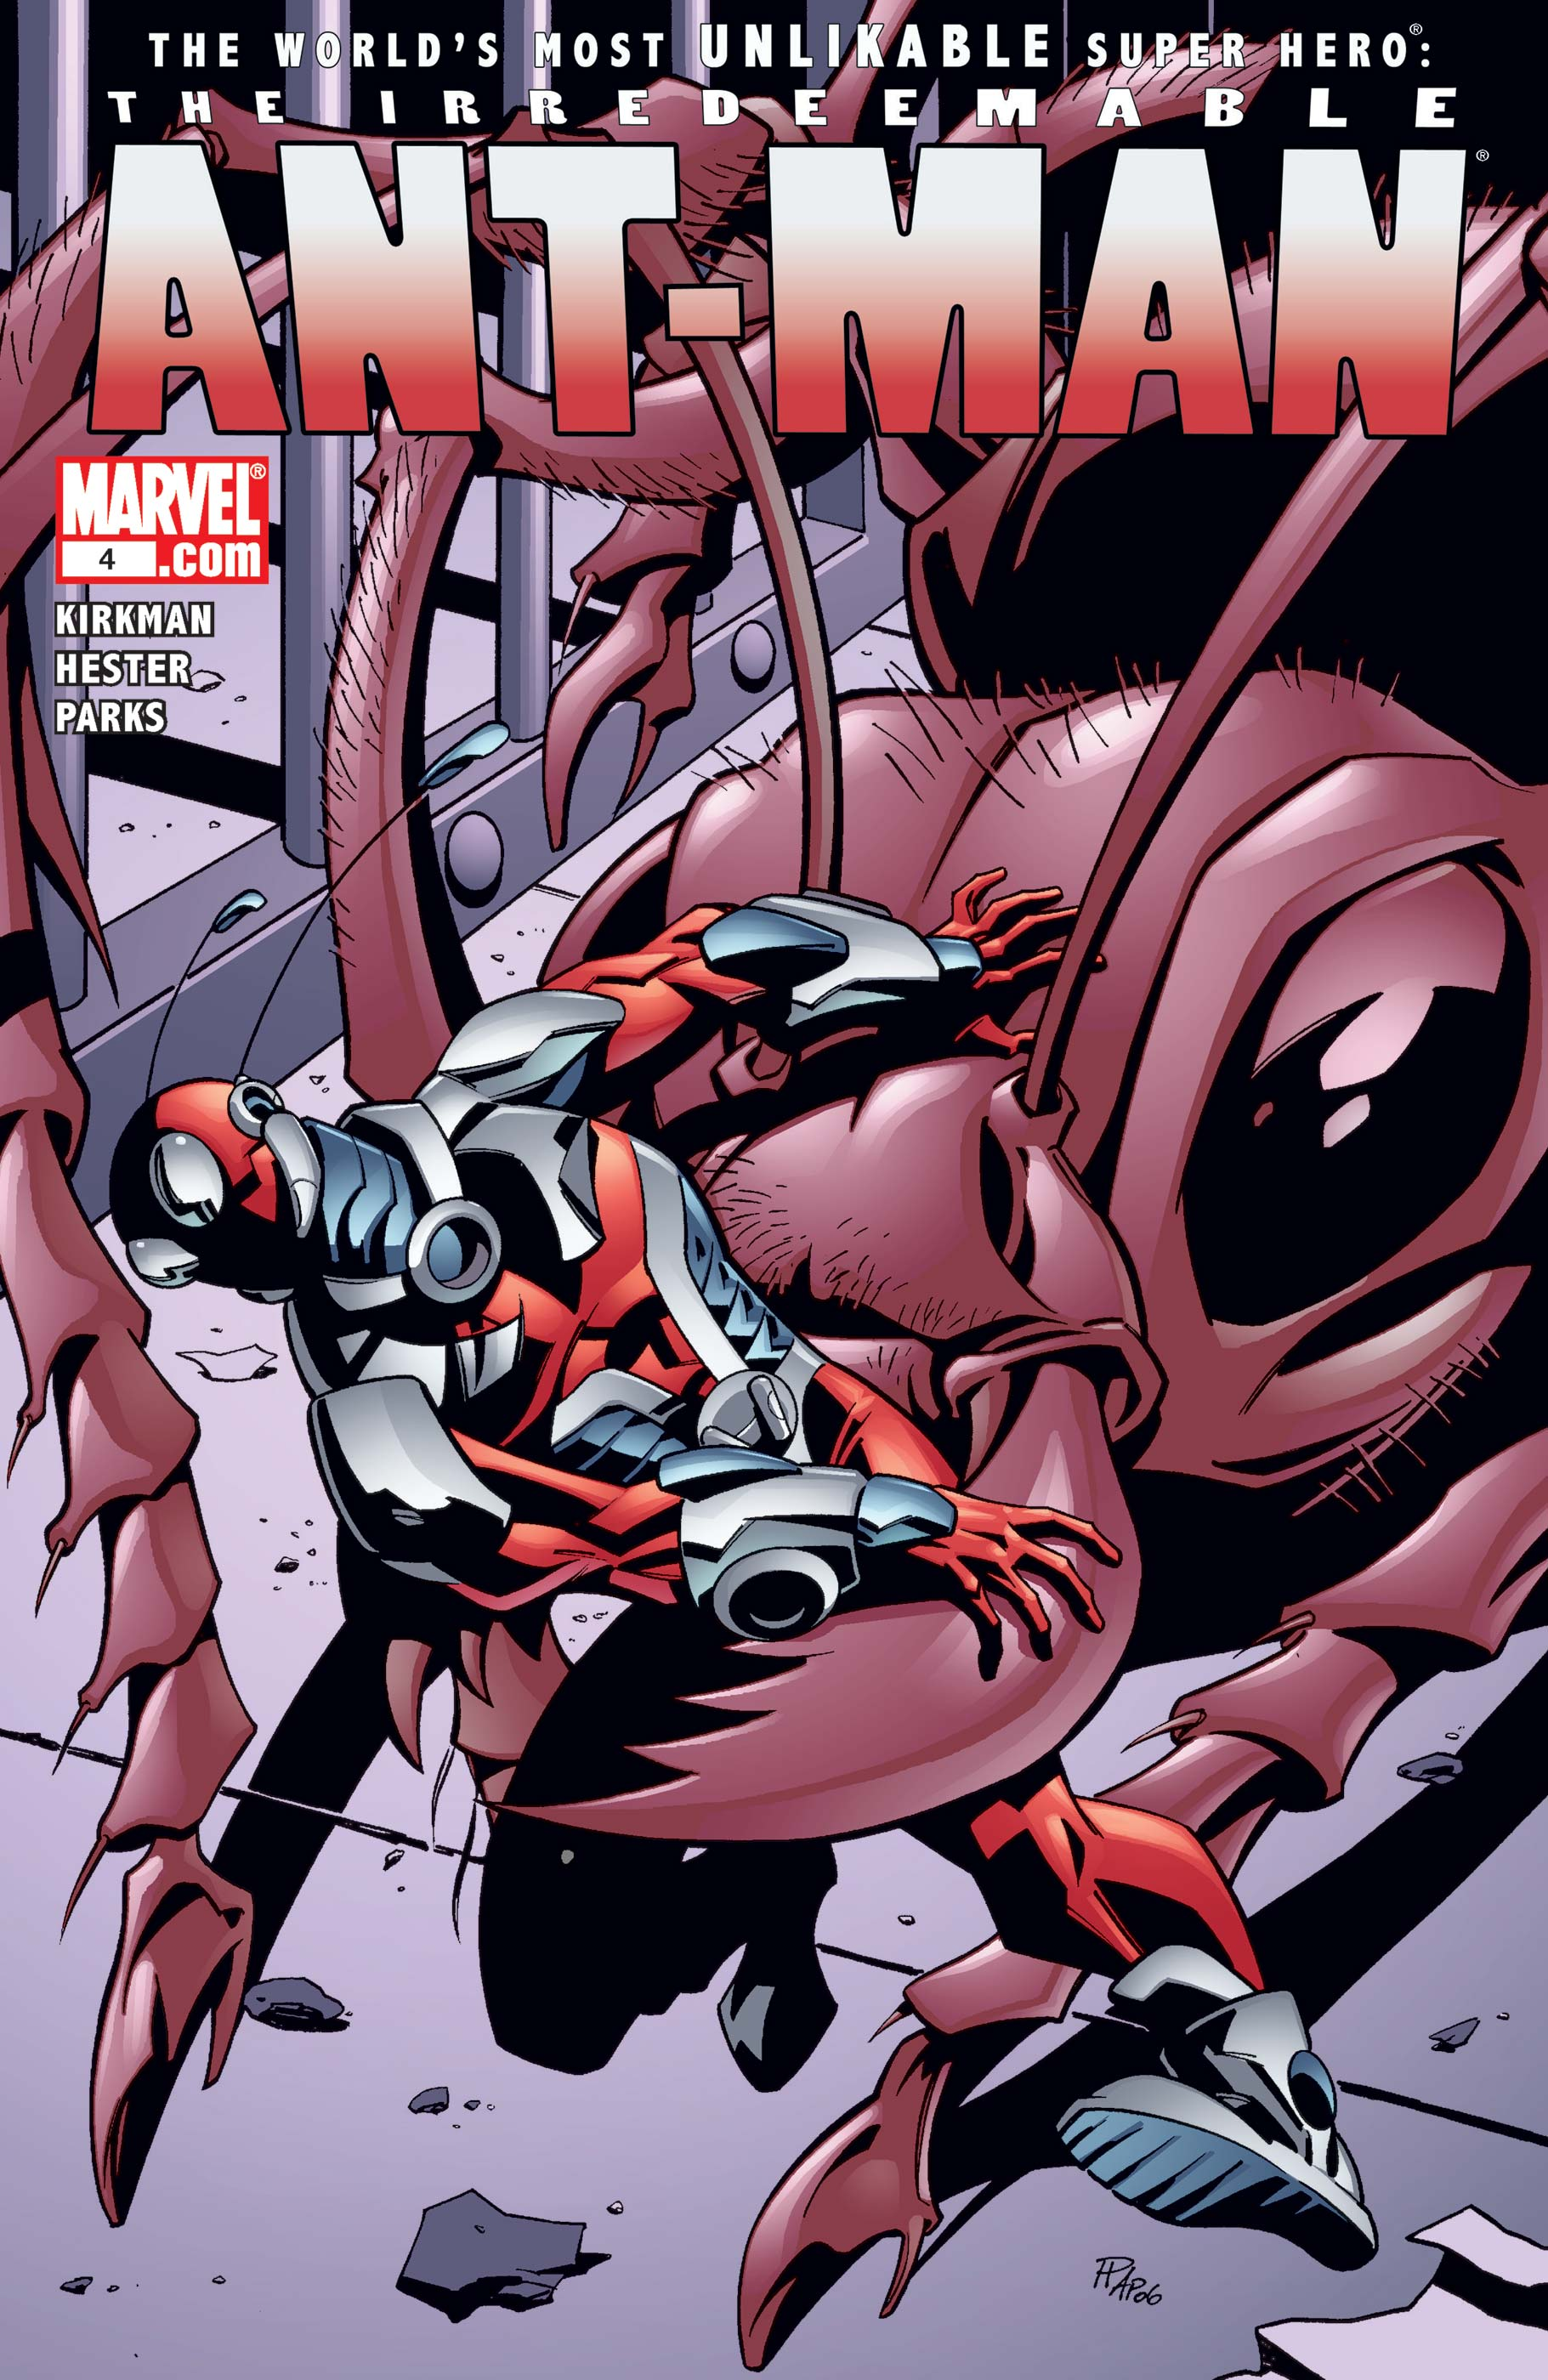 Irredeemable Ant-Man (2006) #4